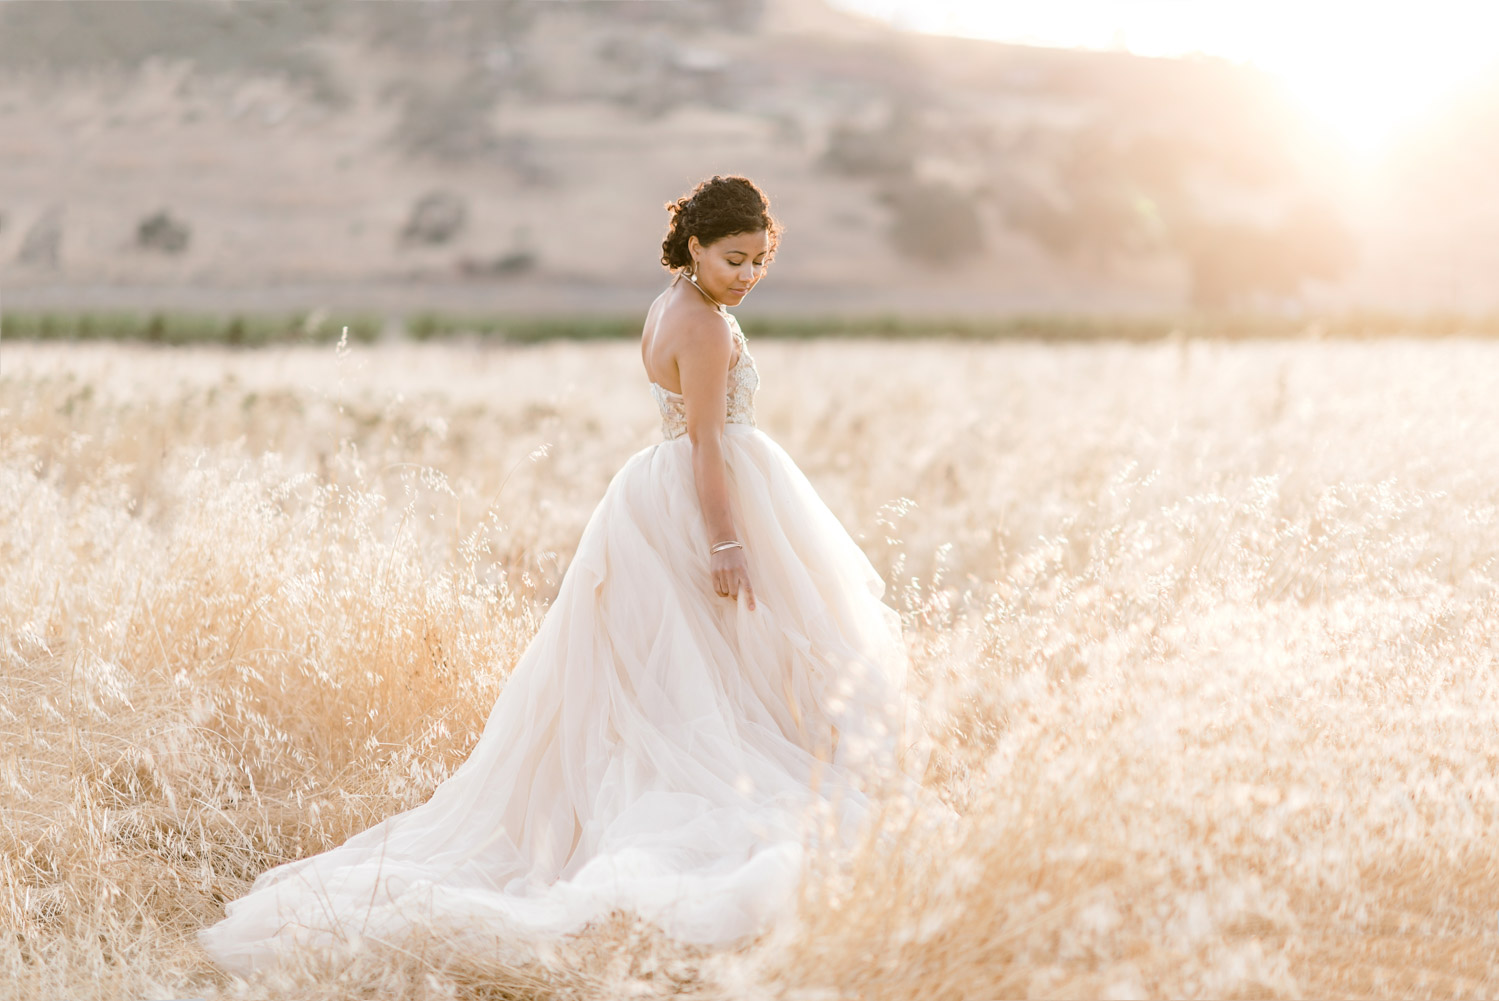 bridal_editorial_elopement_fairfield_california-1